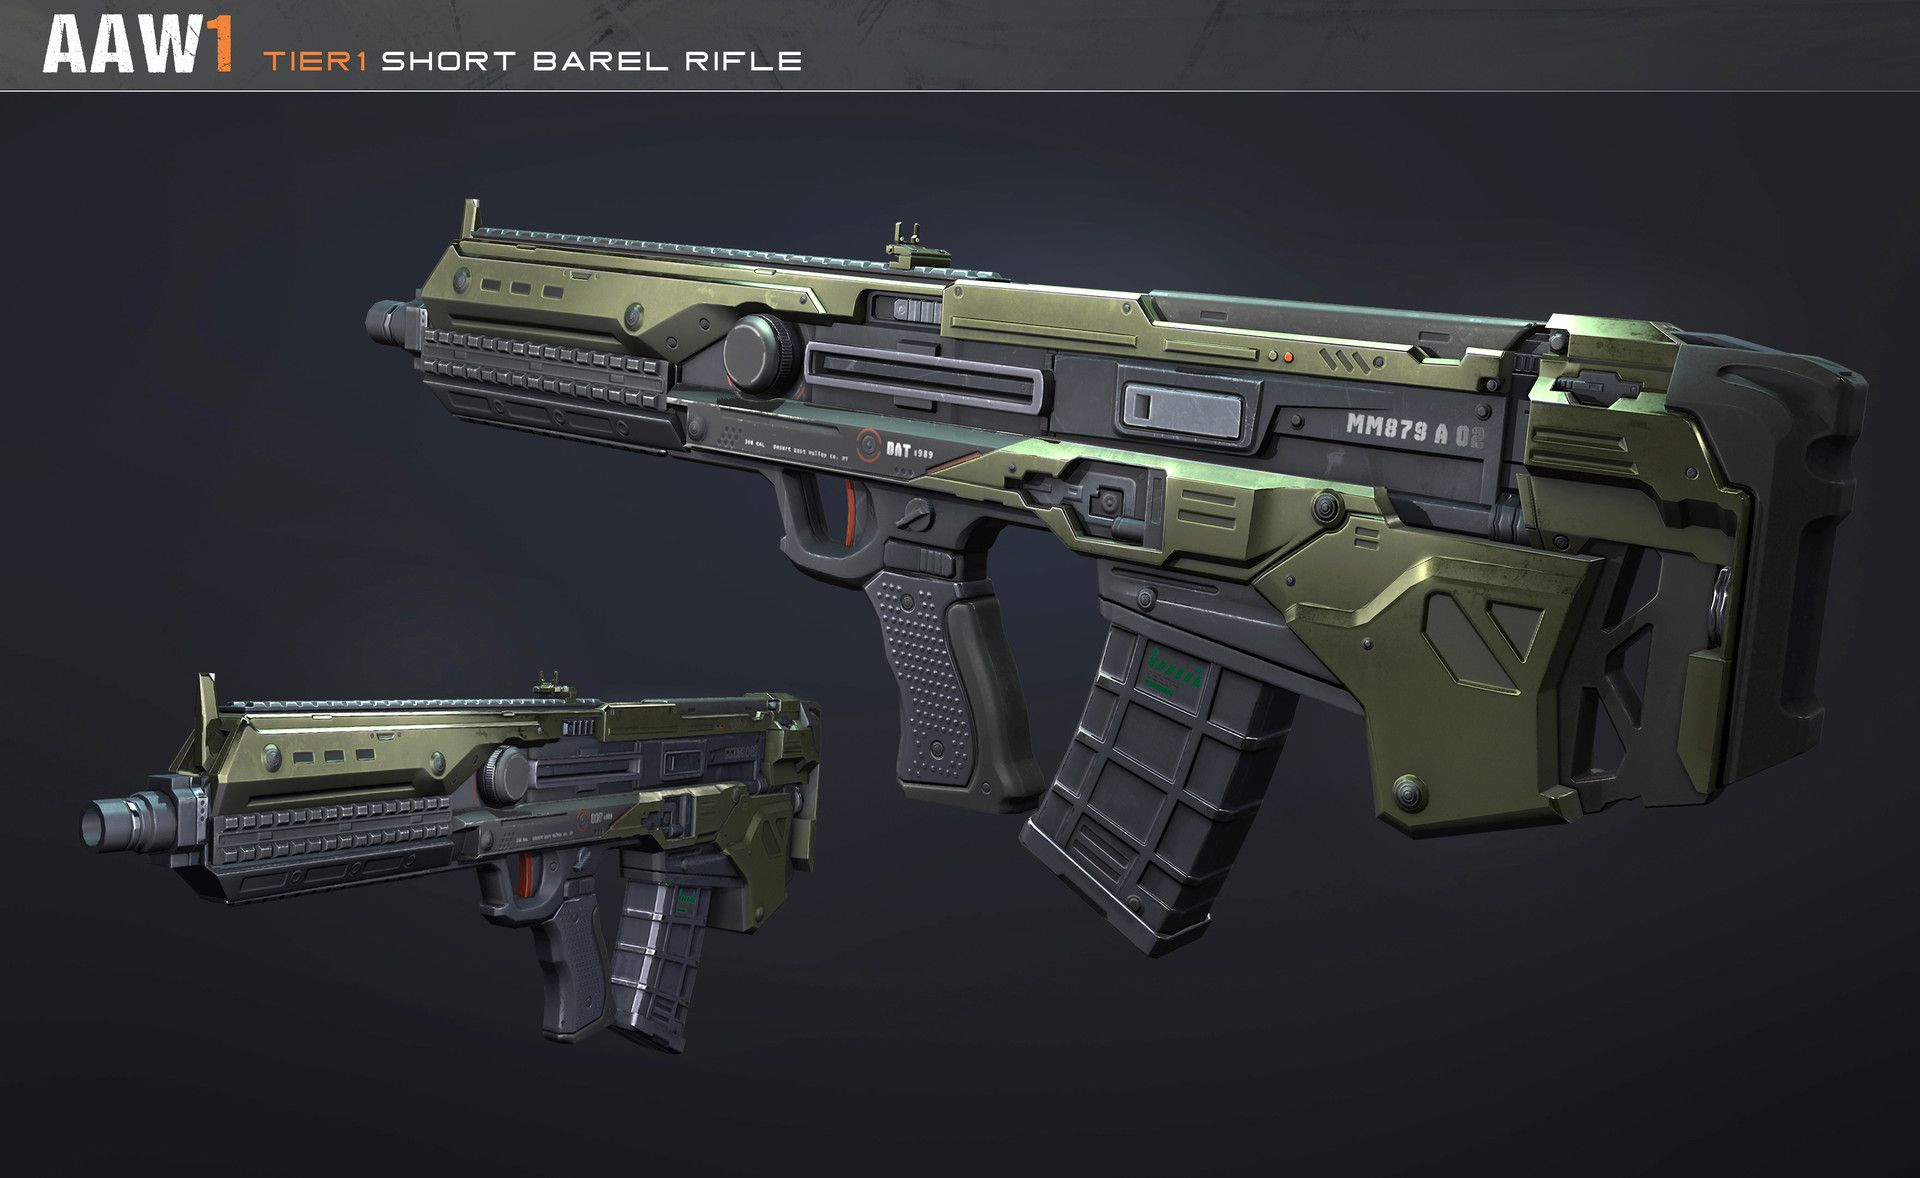 Pin On Weapons Armor More